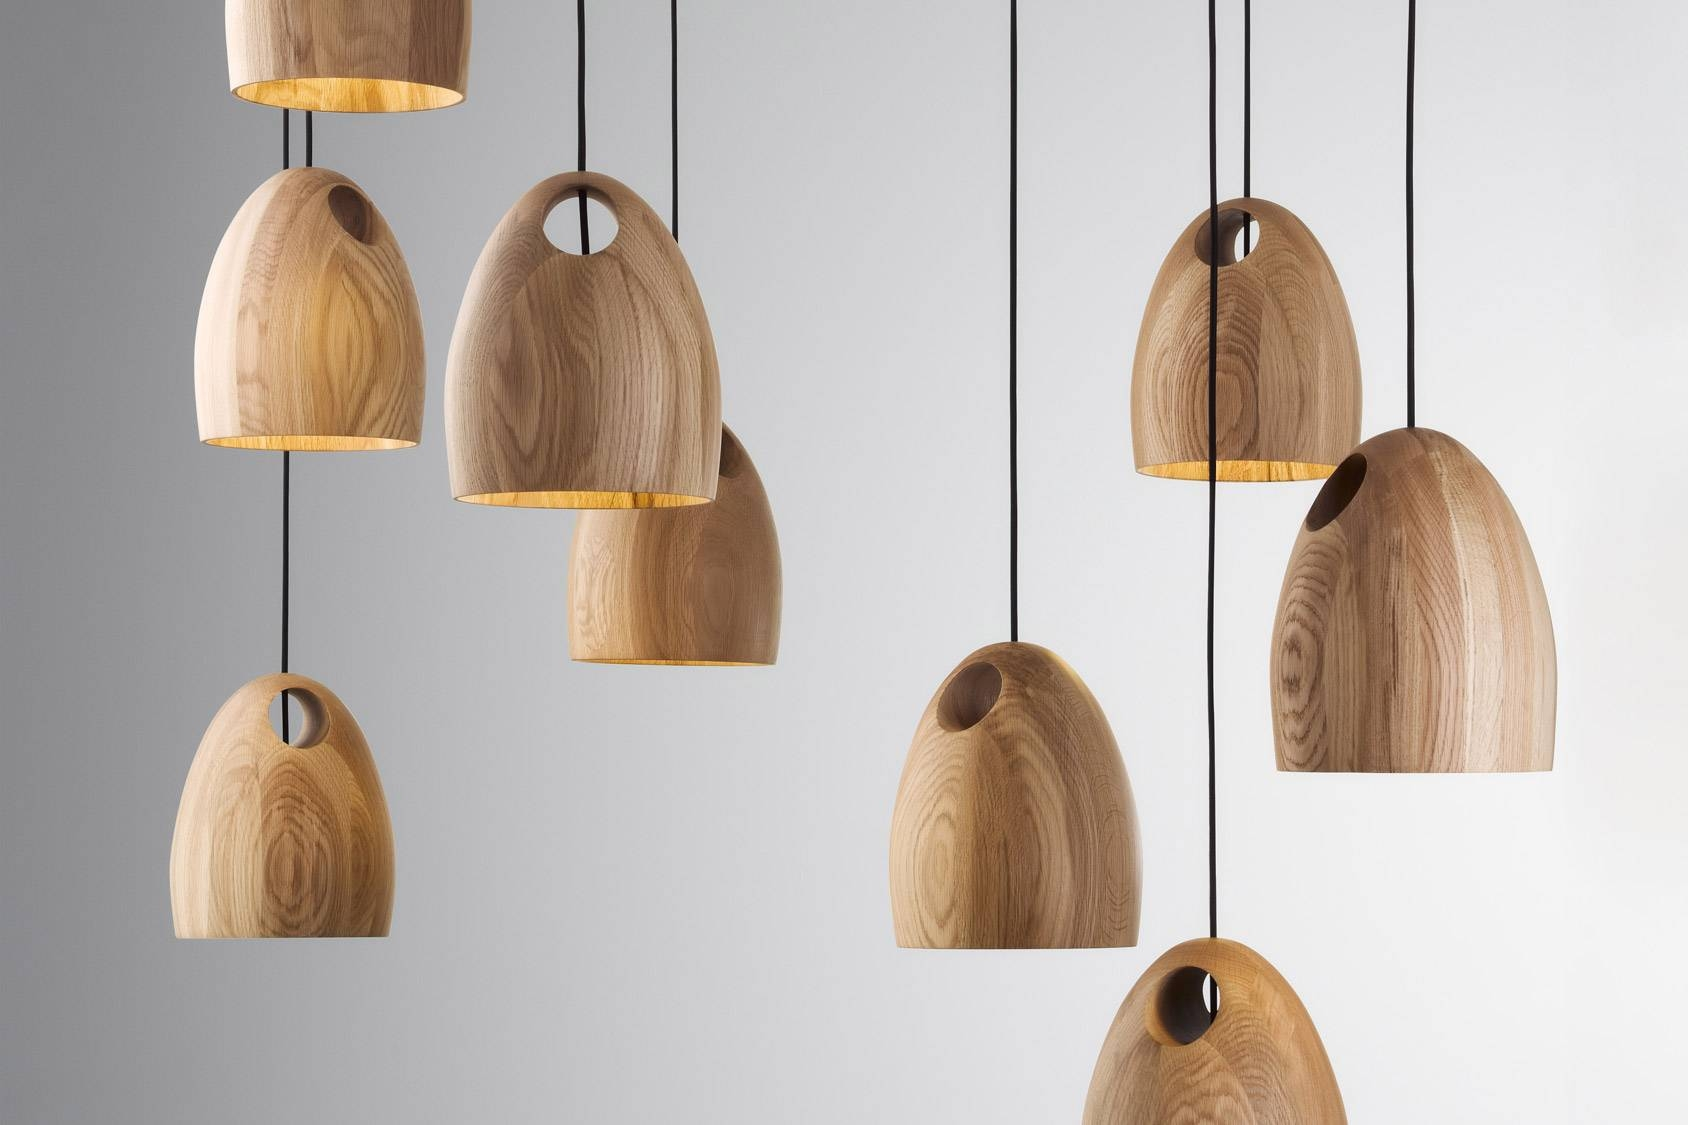 Enchanting Wood Pendant Lighting 97 Wood Pendant Lamp Shade-11350 throughout Wooden Pendant Lights Australia (Image 7 of 15)